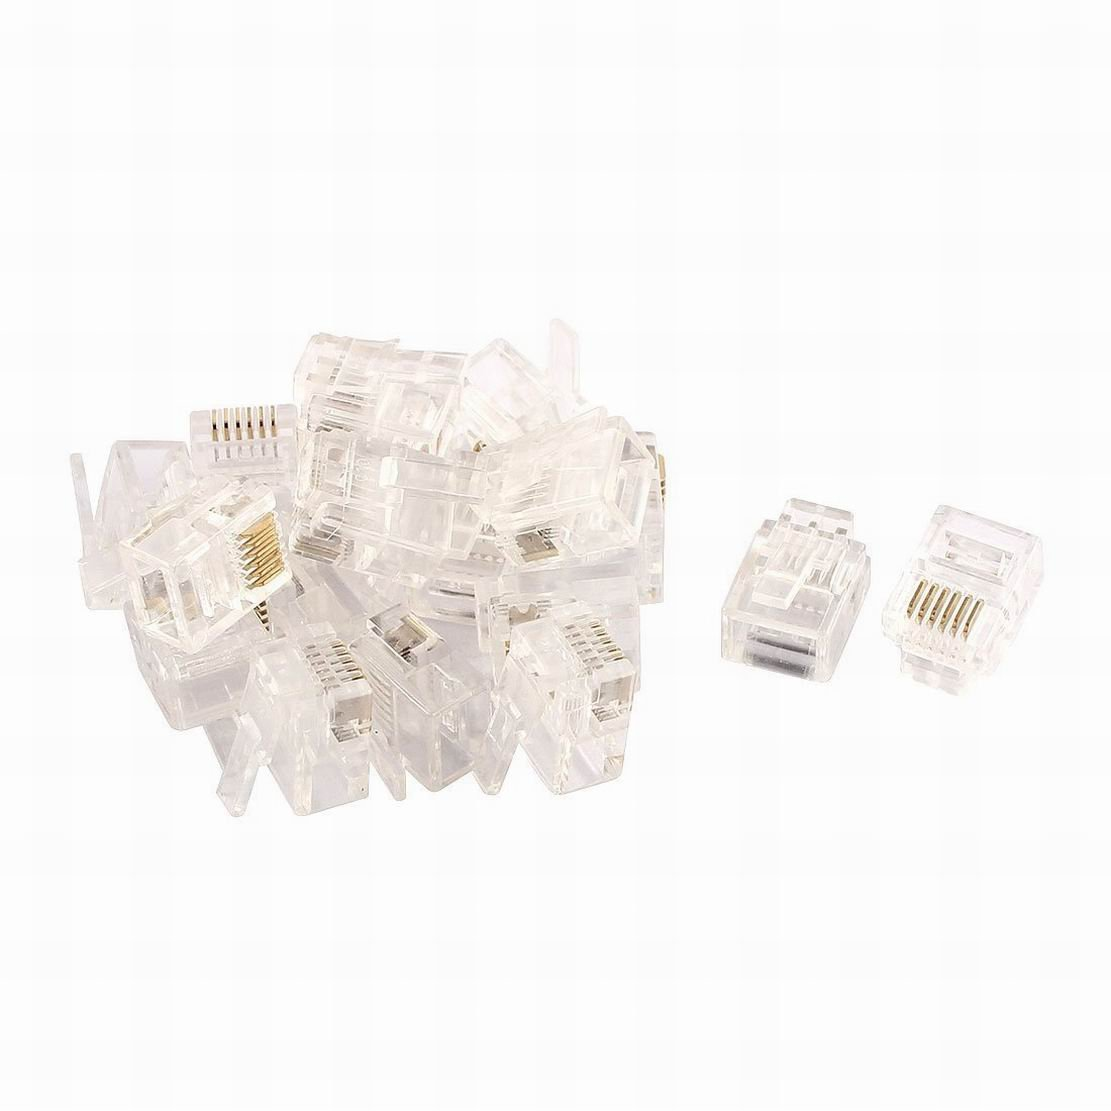 Ugtell 20pcs RJ12 6P6C Modular Network Crimping Ethernet Cord Wire Adapter Connector